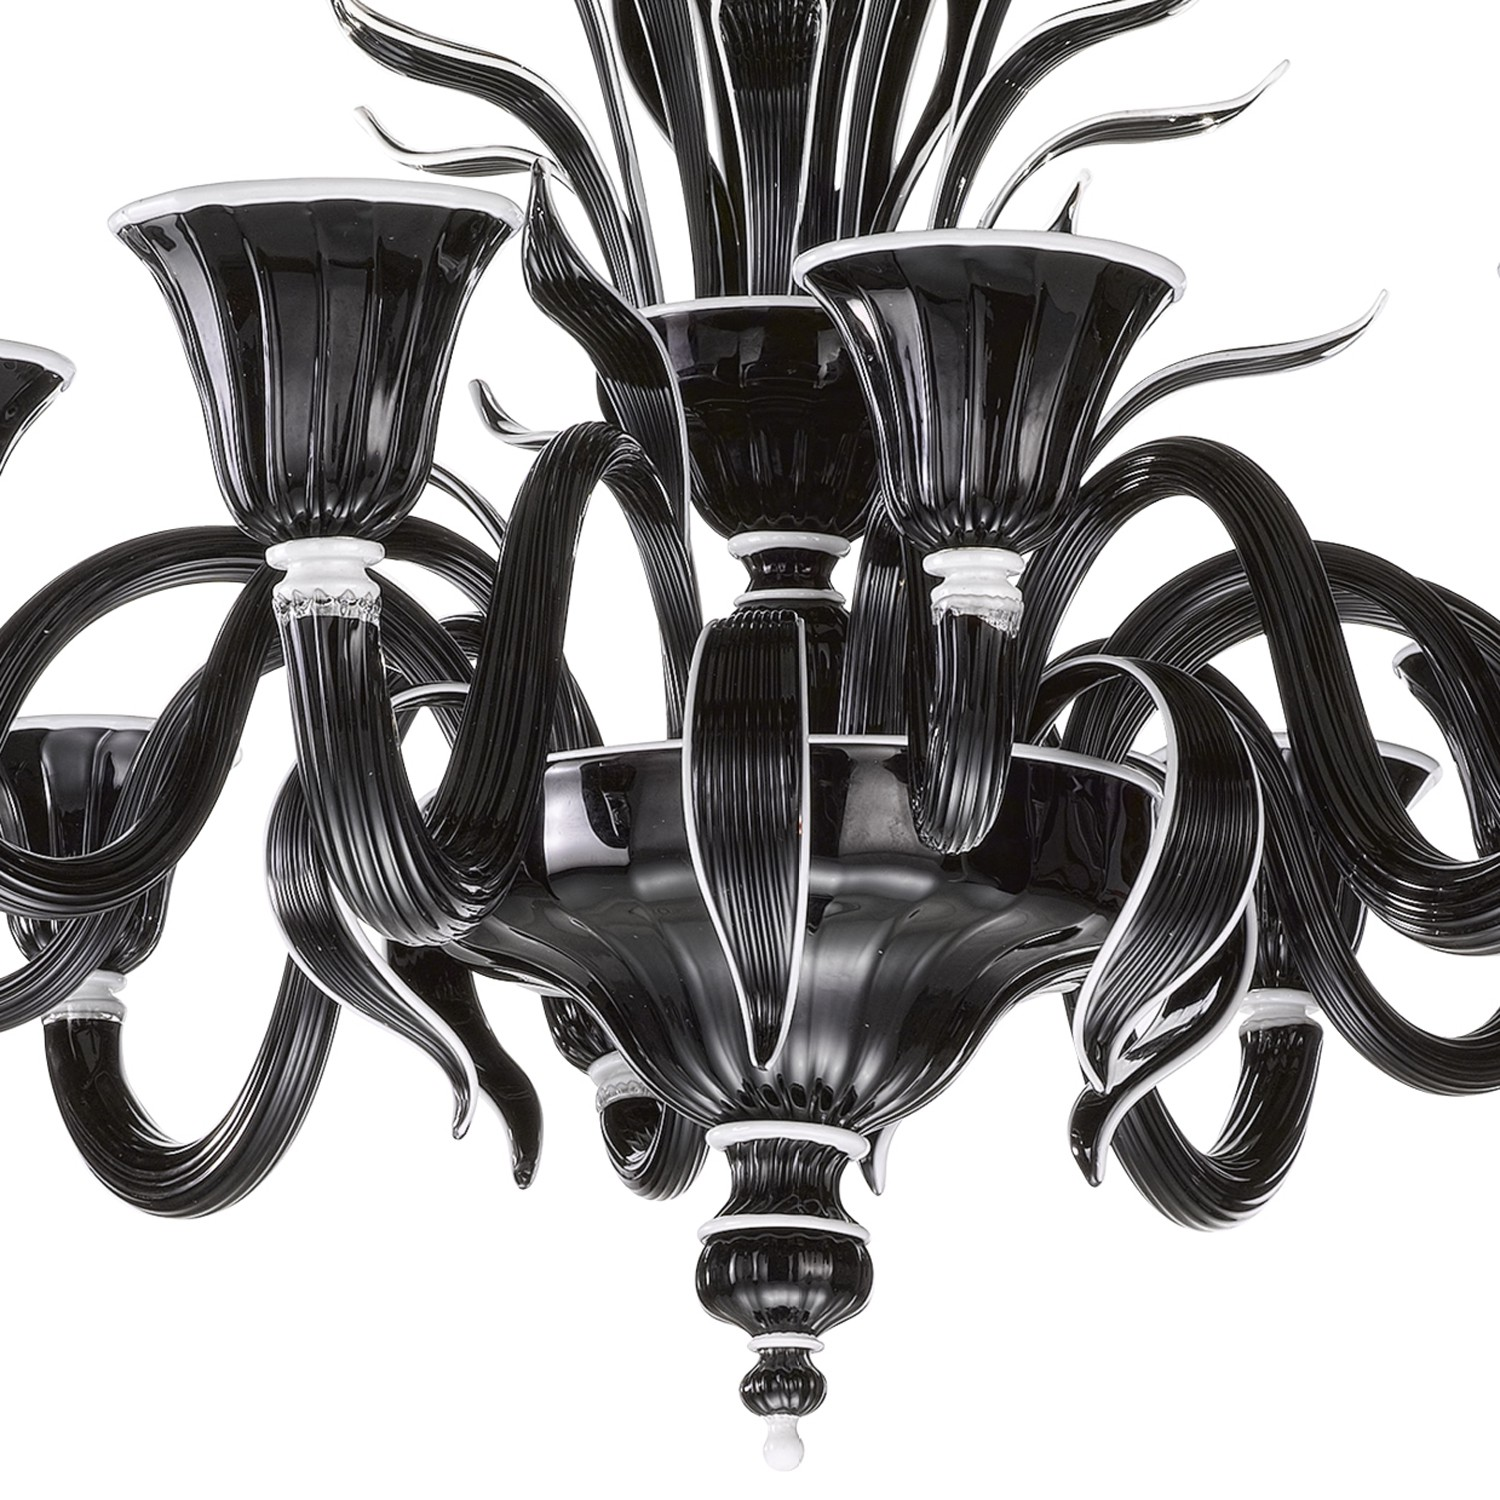 Murano glass chandelier in black and white glass 6 6 lights 1011